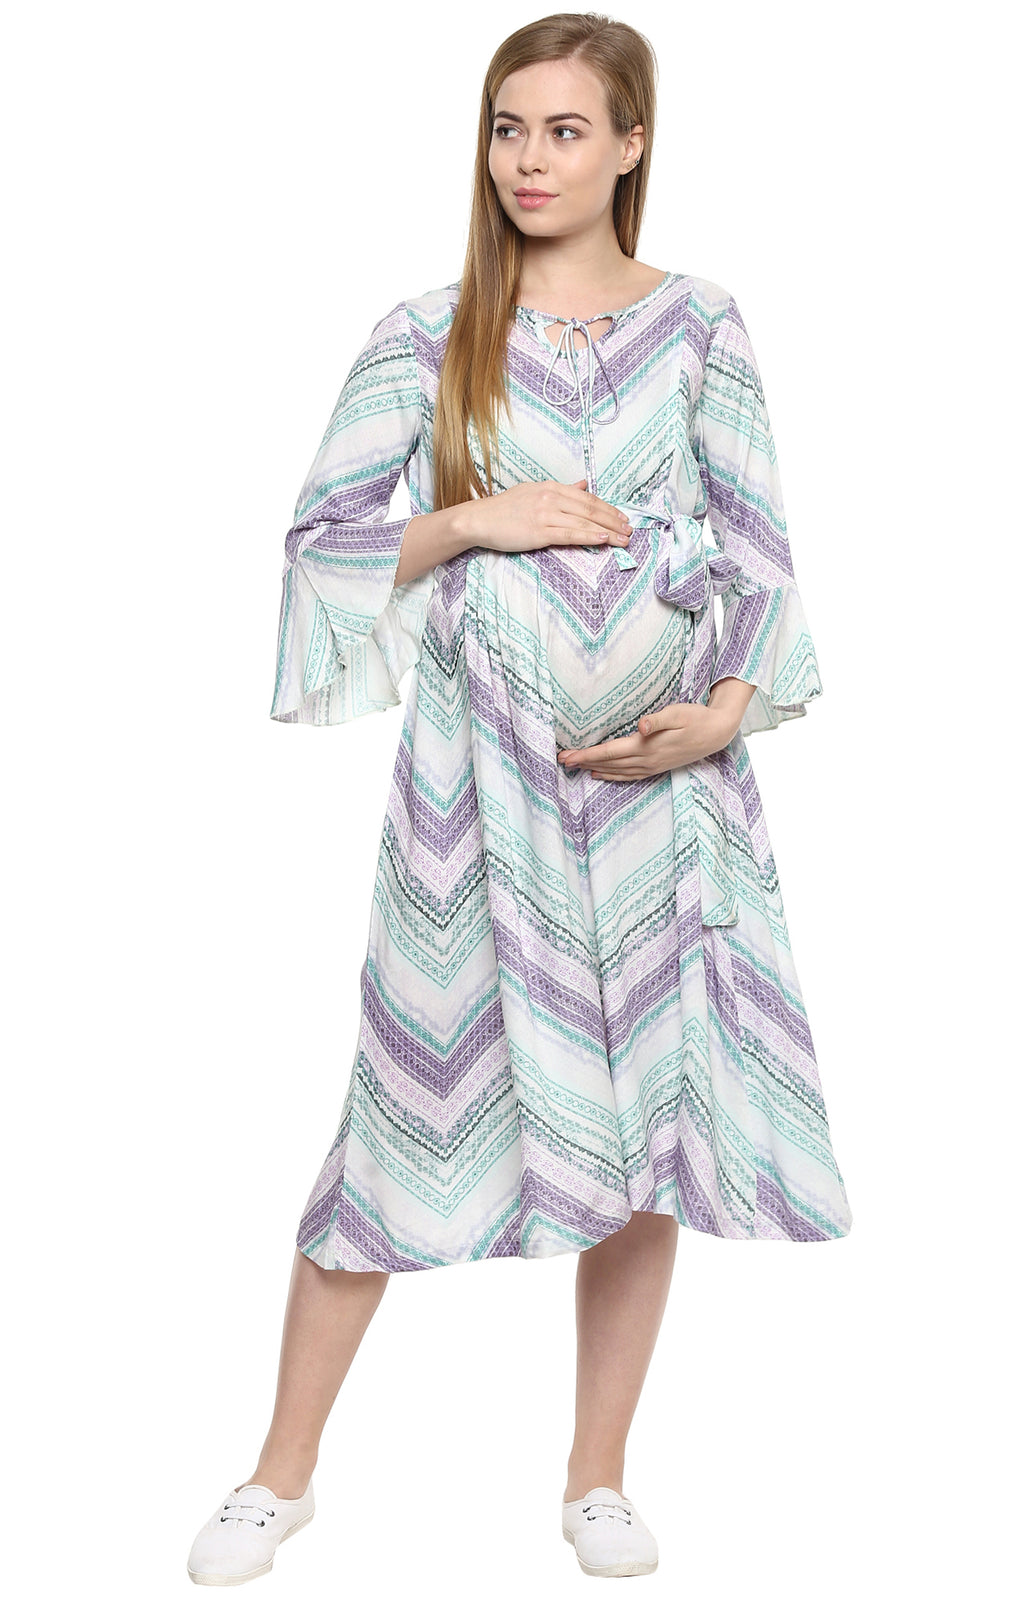 Front String Tie Up Nursing Tunic Dress - MomSoon Maternity and Nursing Wear